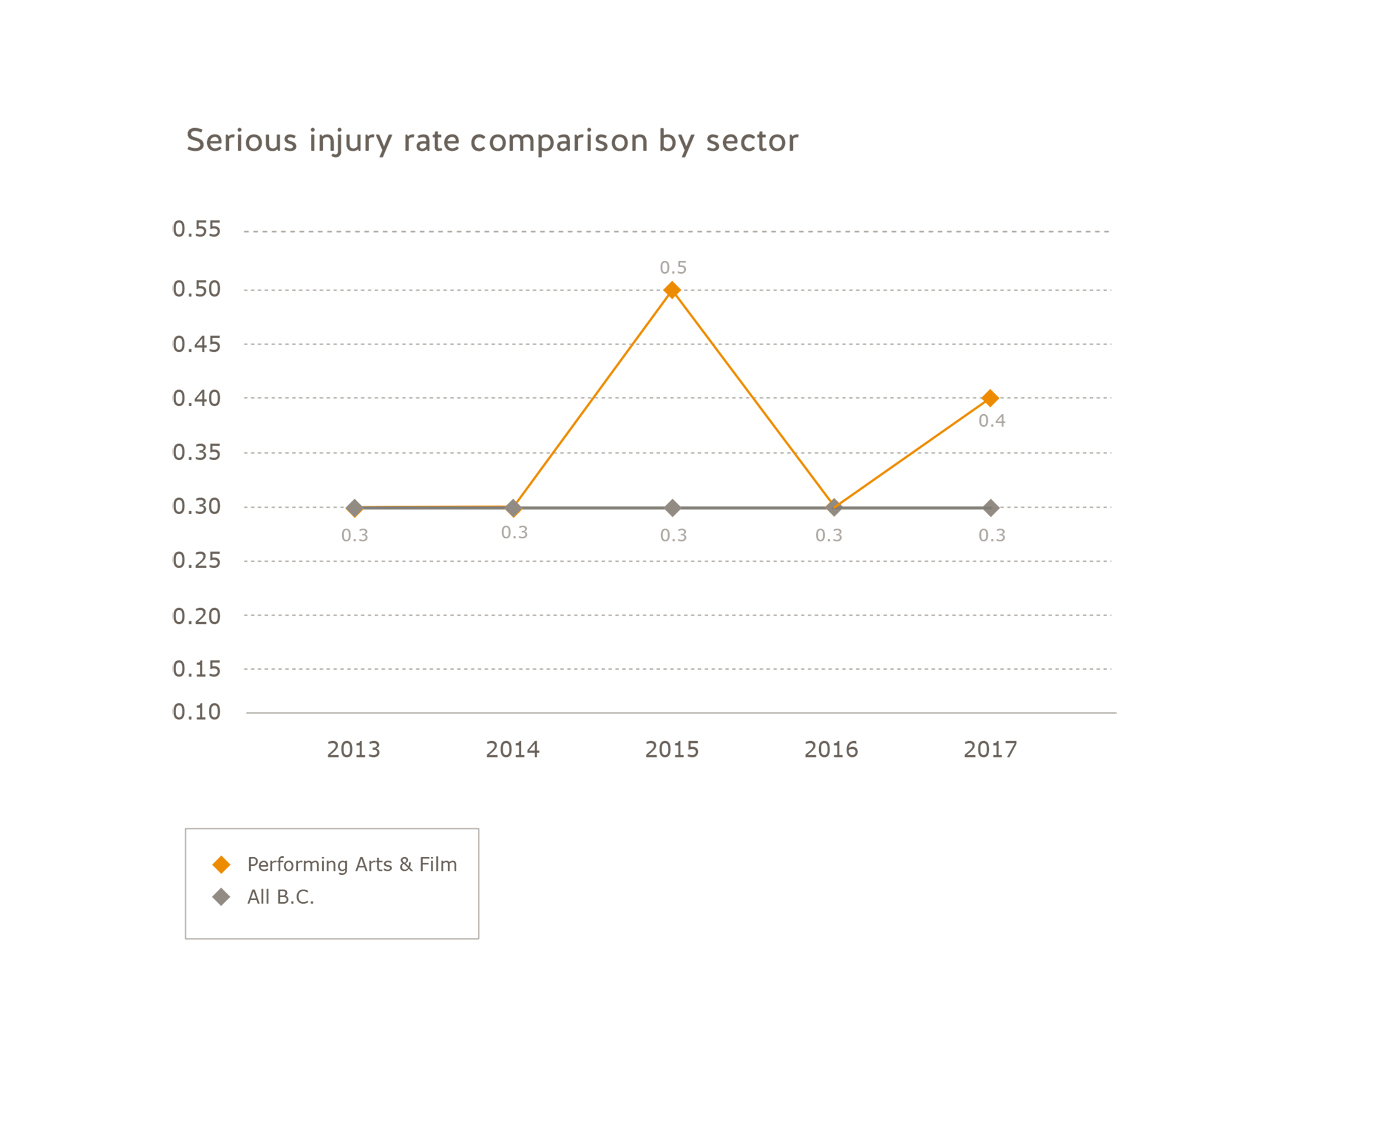 Serious injury rate comparison oil and gas industry for 2013 - 2017. Petroleum (oil and gas): 2013 = 0.1, 2014 = 0.1, 2015 = 0.2, 2016 = 0.1, 2017 = 0.1. All of B.C.: 2013 = 0.3, 2014 = 0.3, 2015 = 0.3, 2016 = 0.3, 2017 = 0.3.